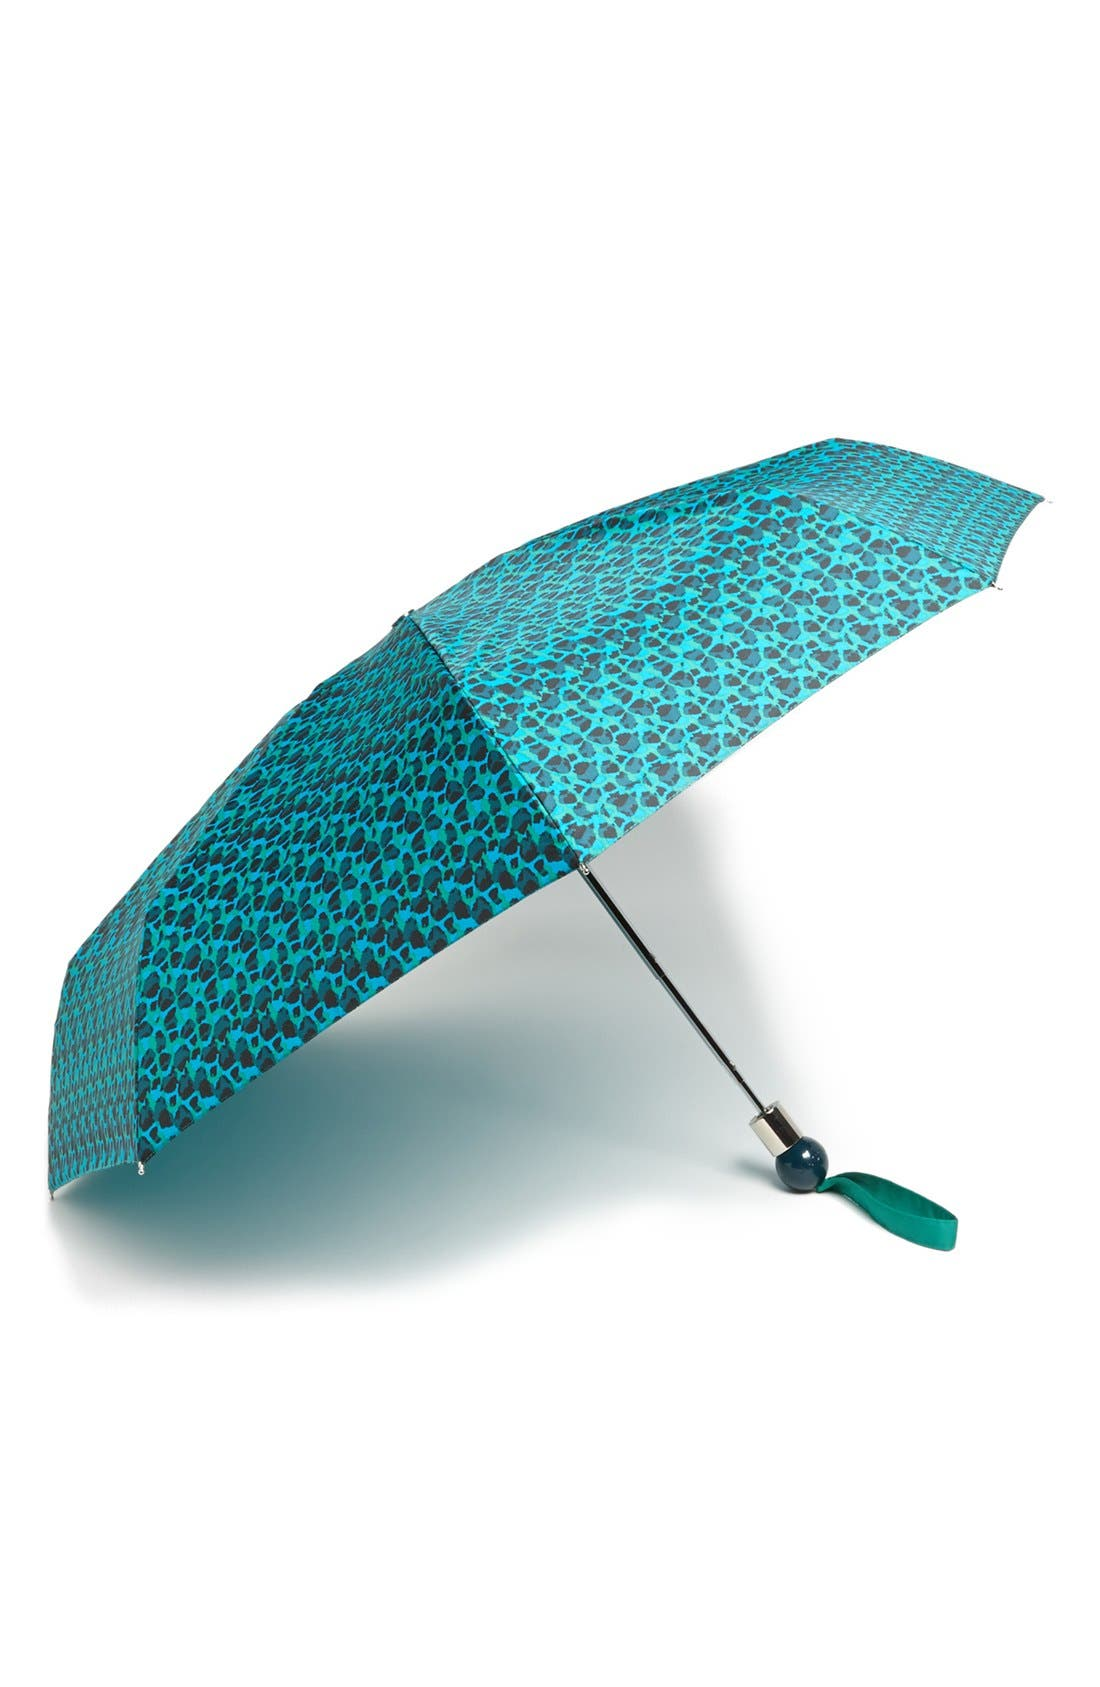 Main Image - MARC BY MARC JACOBS 'Isa' Umbrella